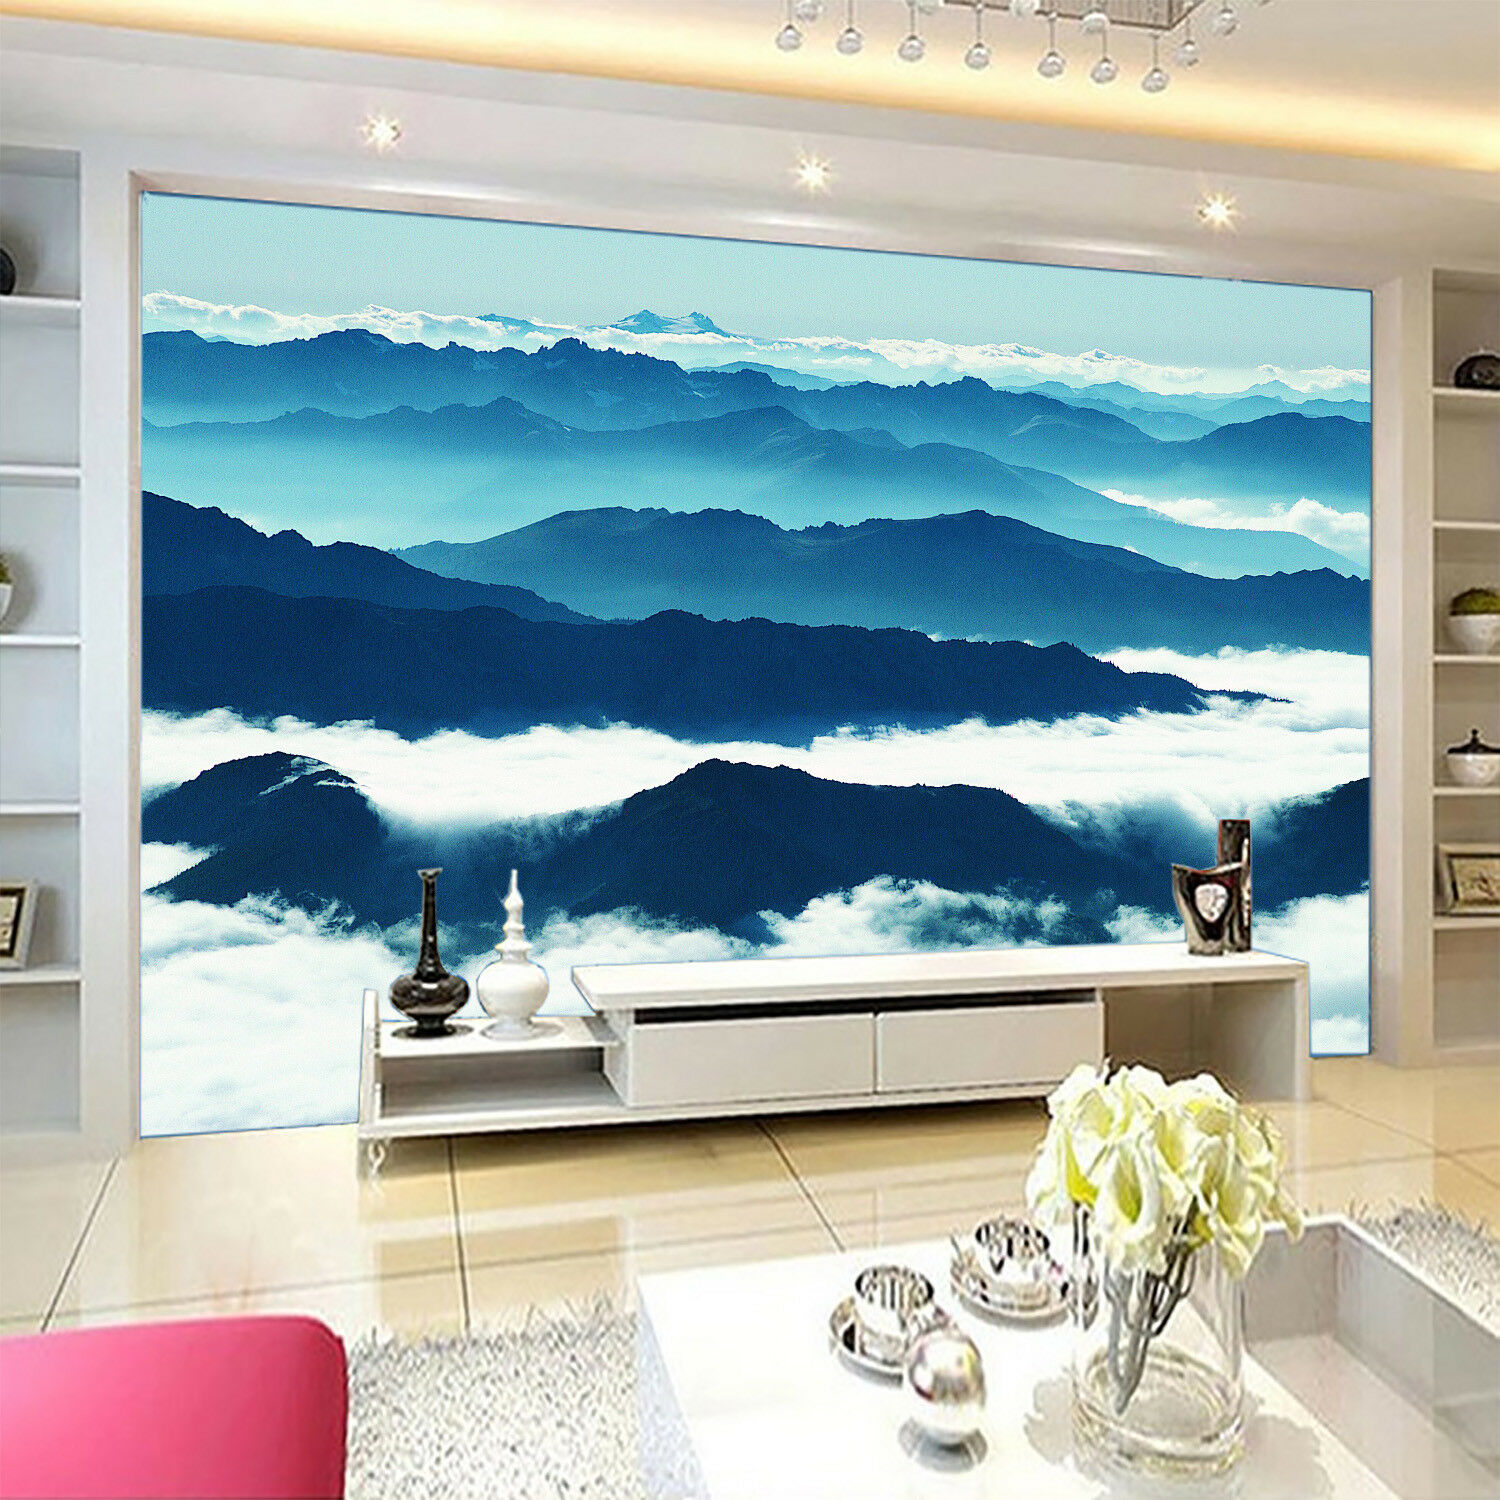 3D Fog Mountain Range 4 Wall Paper Wall Print Decal Wall Deco Indoor Mural Carly